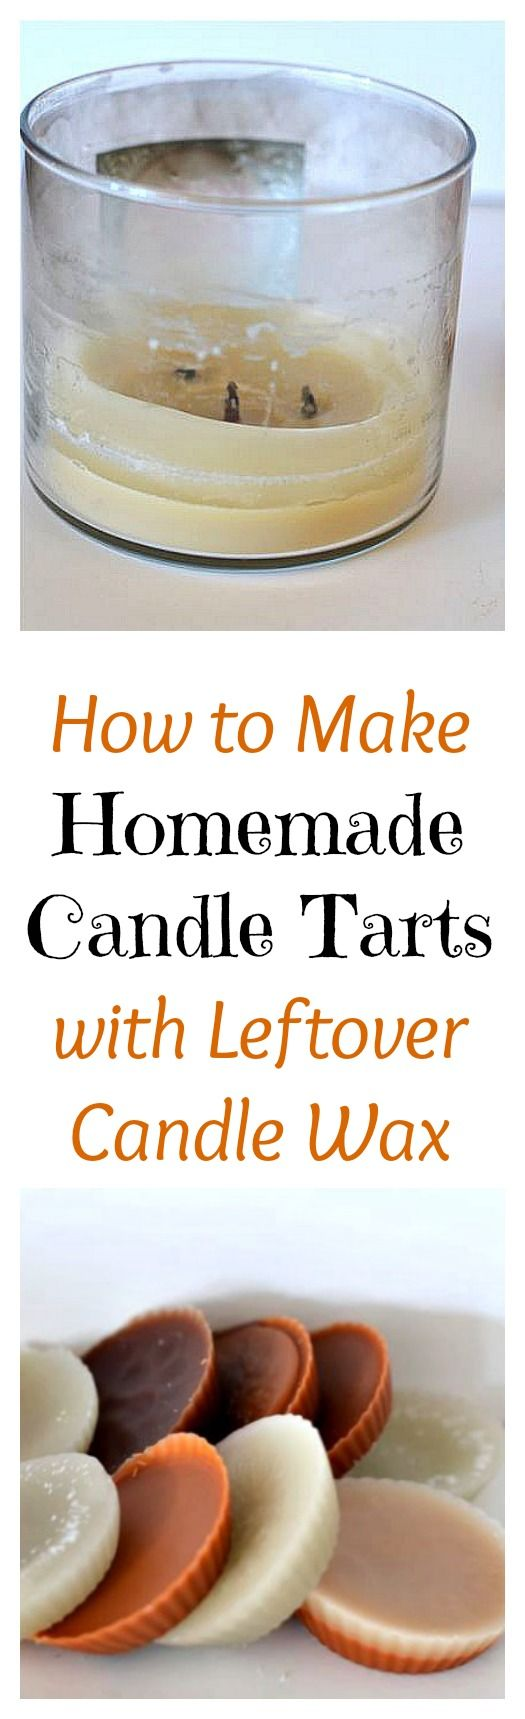 Best 25 homemade waxing ideas on pinterest wax burner for Scents for homemade candles